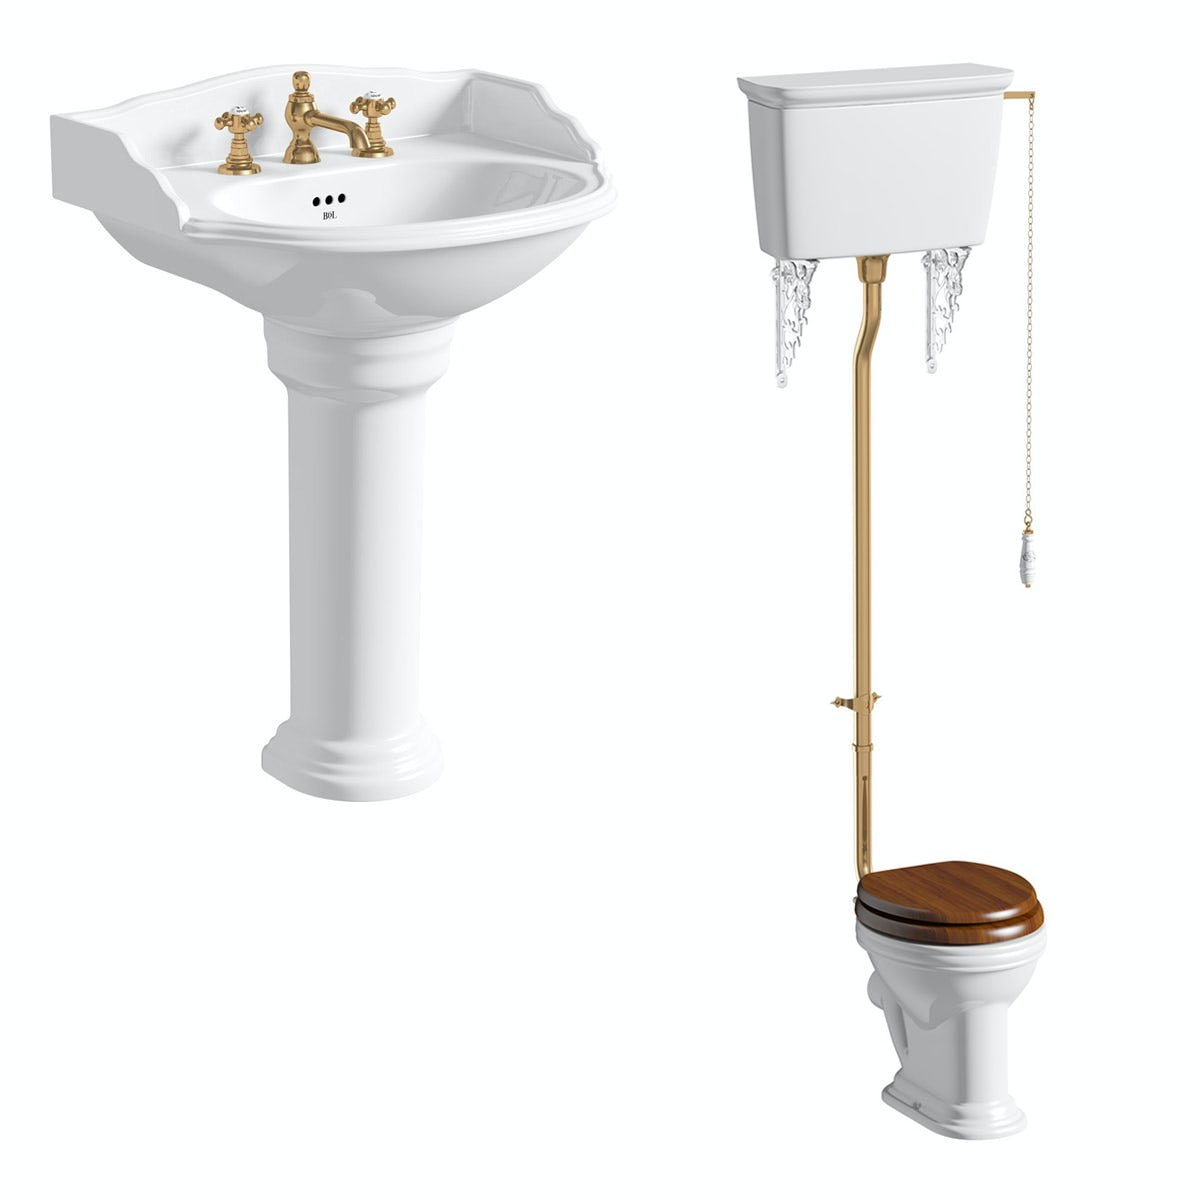 Belle de Louvain Bellini high level toilet and full pedestal suite with incalux fittings and taps